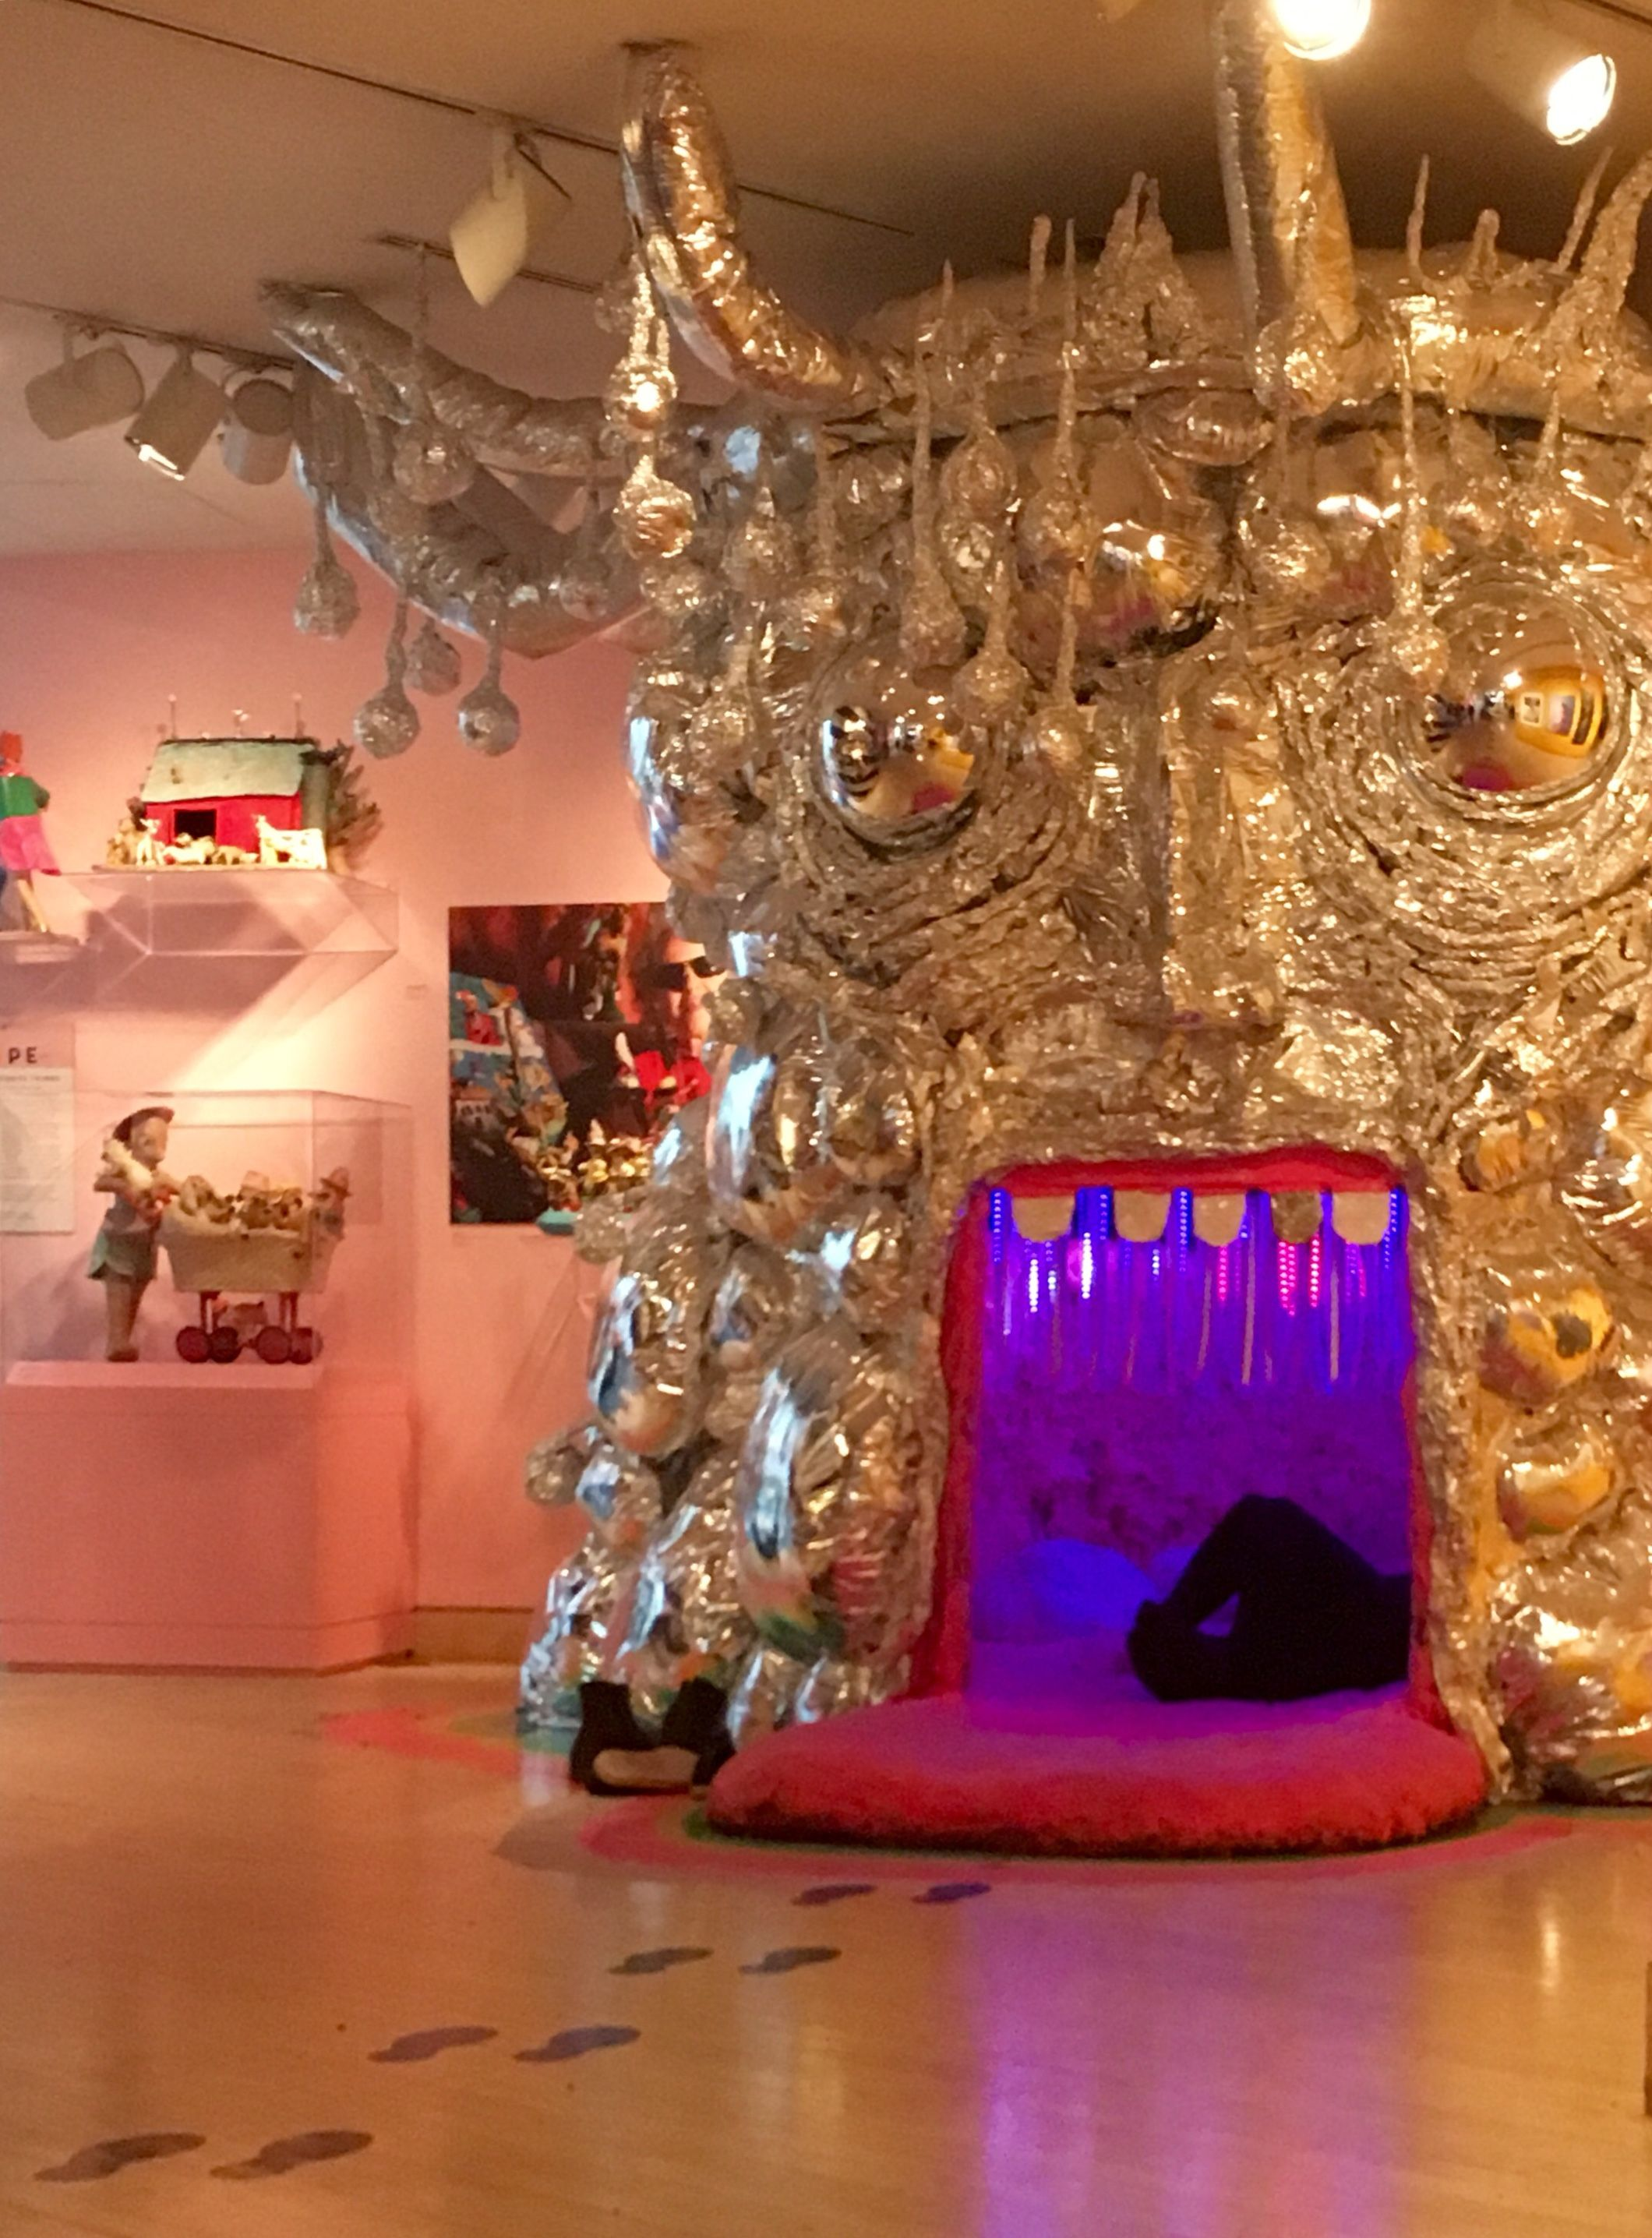 The King's Mouth by Wayne Coyne